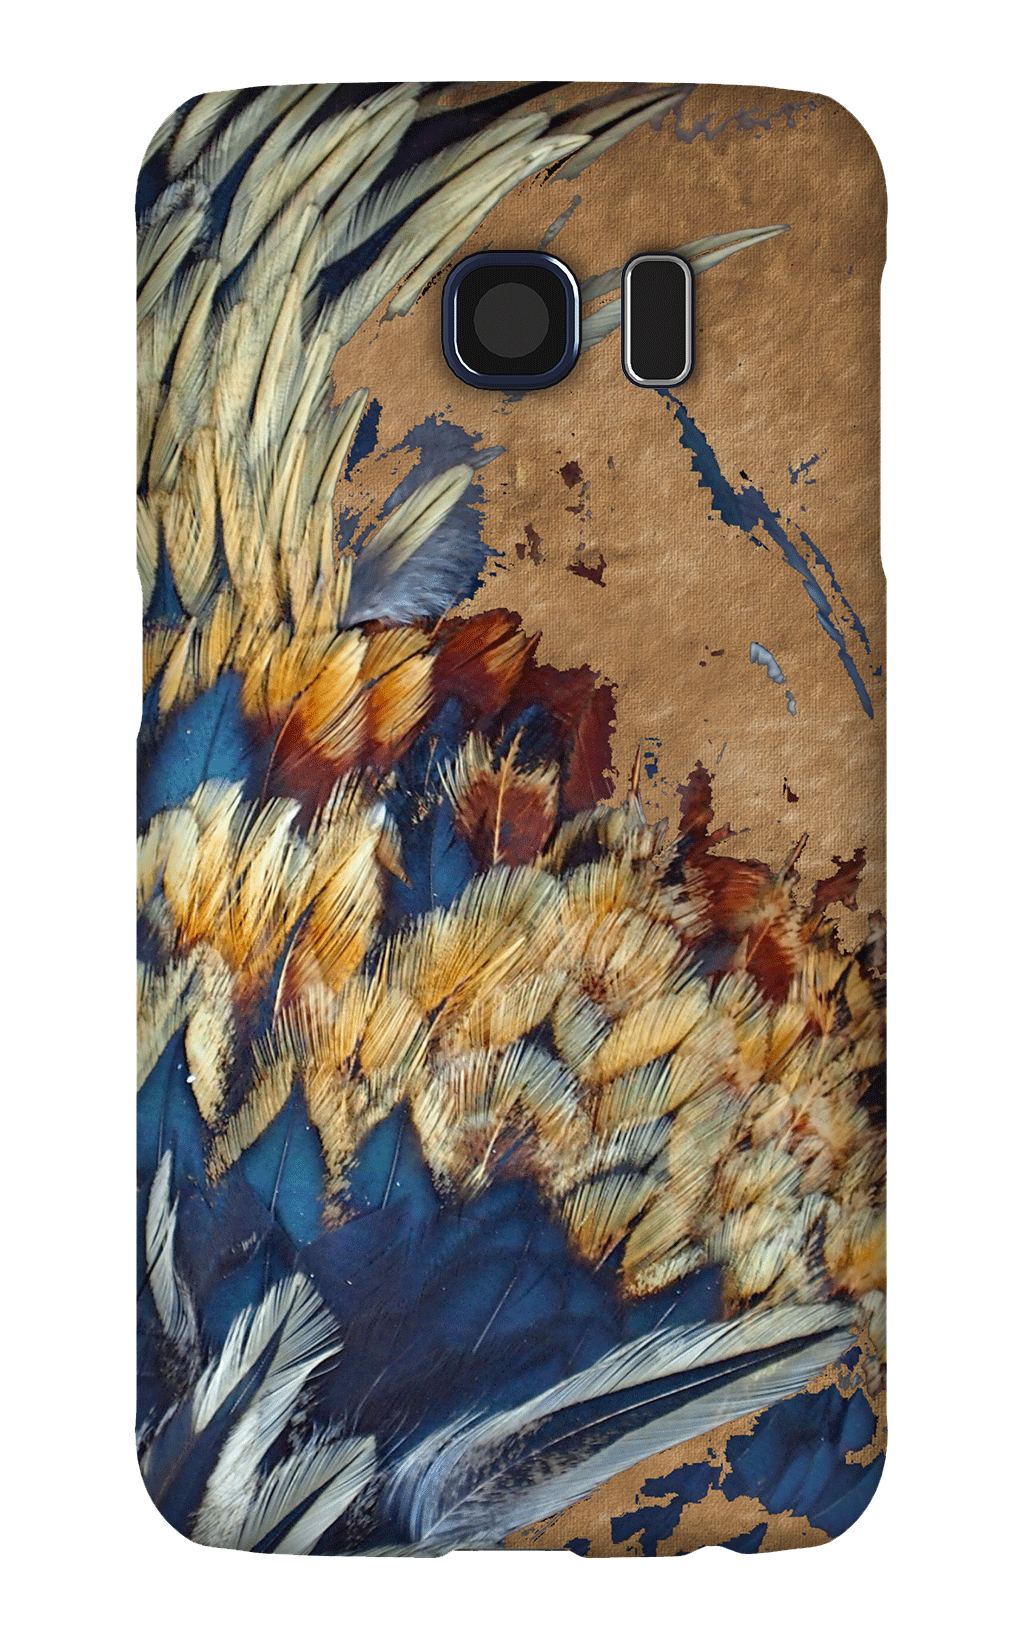 Dalis-Feathers-Cellphone-Case